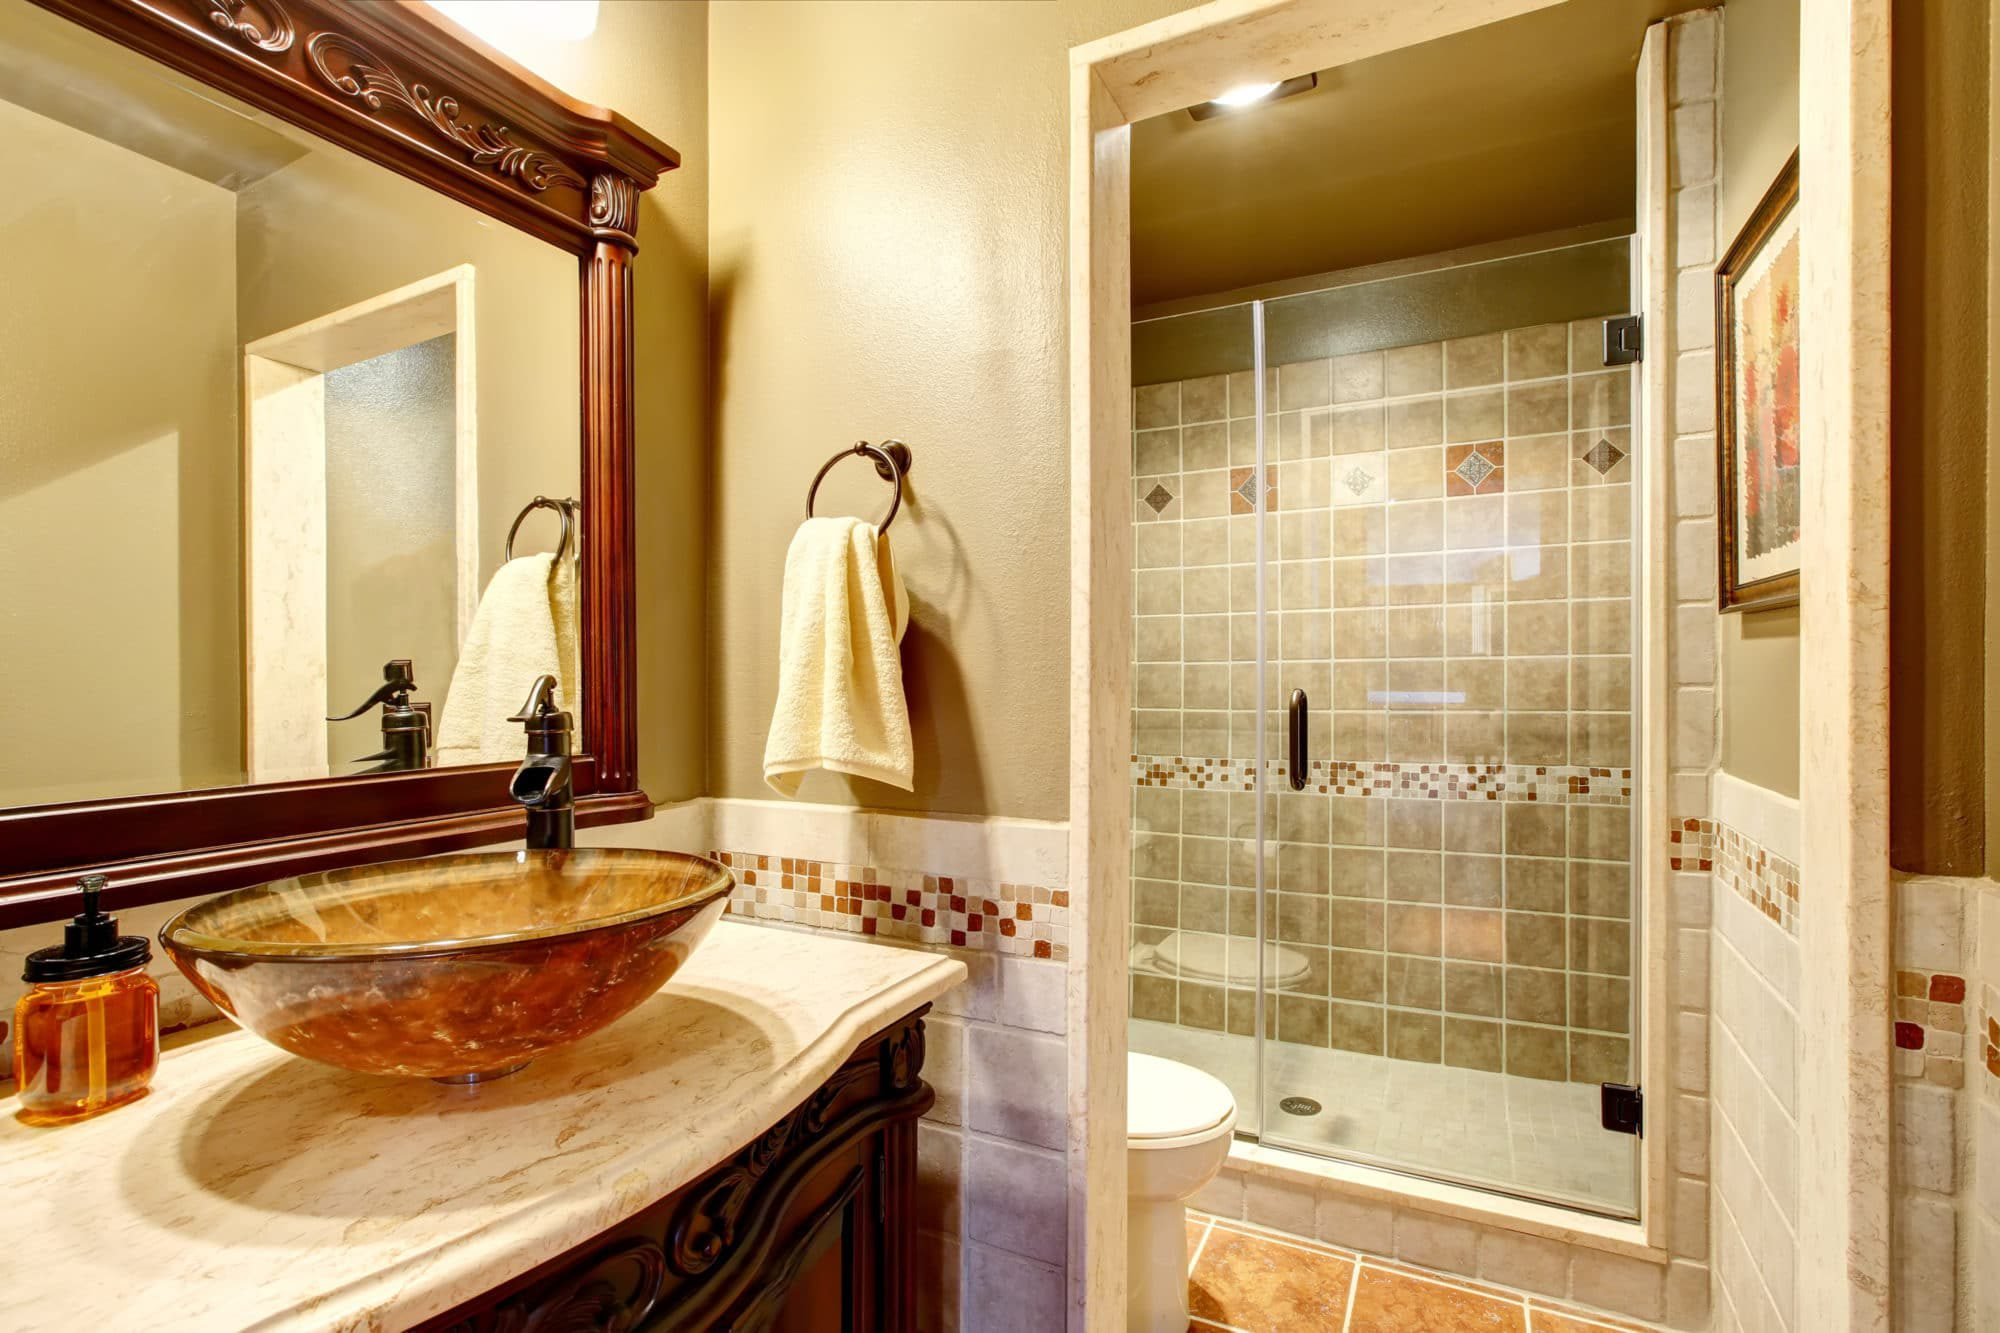 Rich bathroom vanity cabinet and matching mirrow with a gorgeous vessel sink. Well appointed and private adjacent shower and toilet room complete this nicely remodeled bathroom.